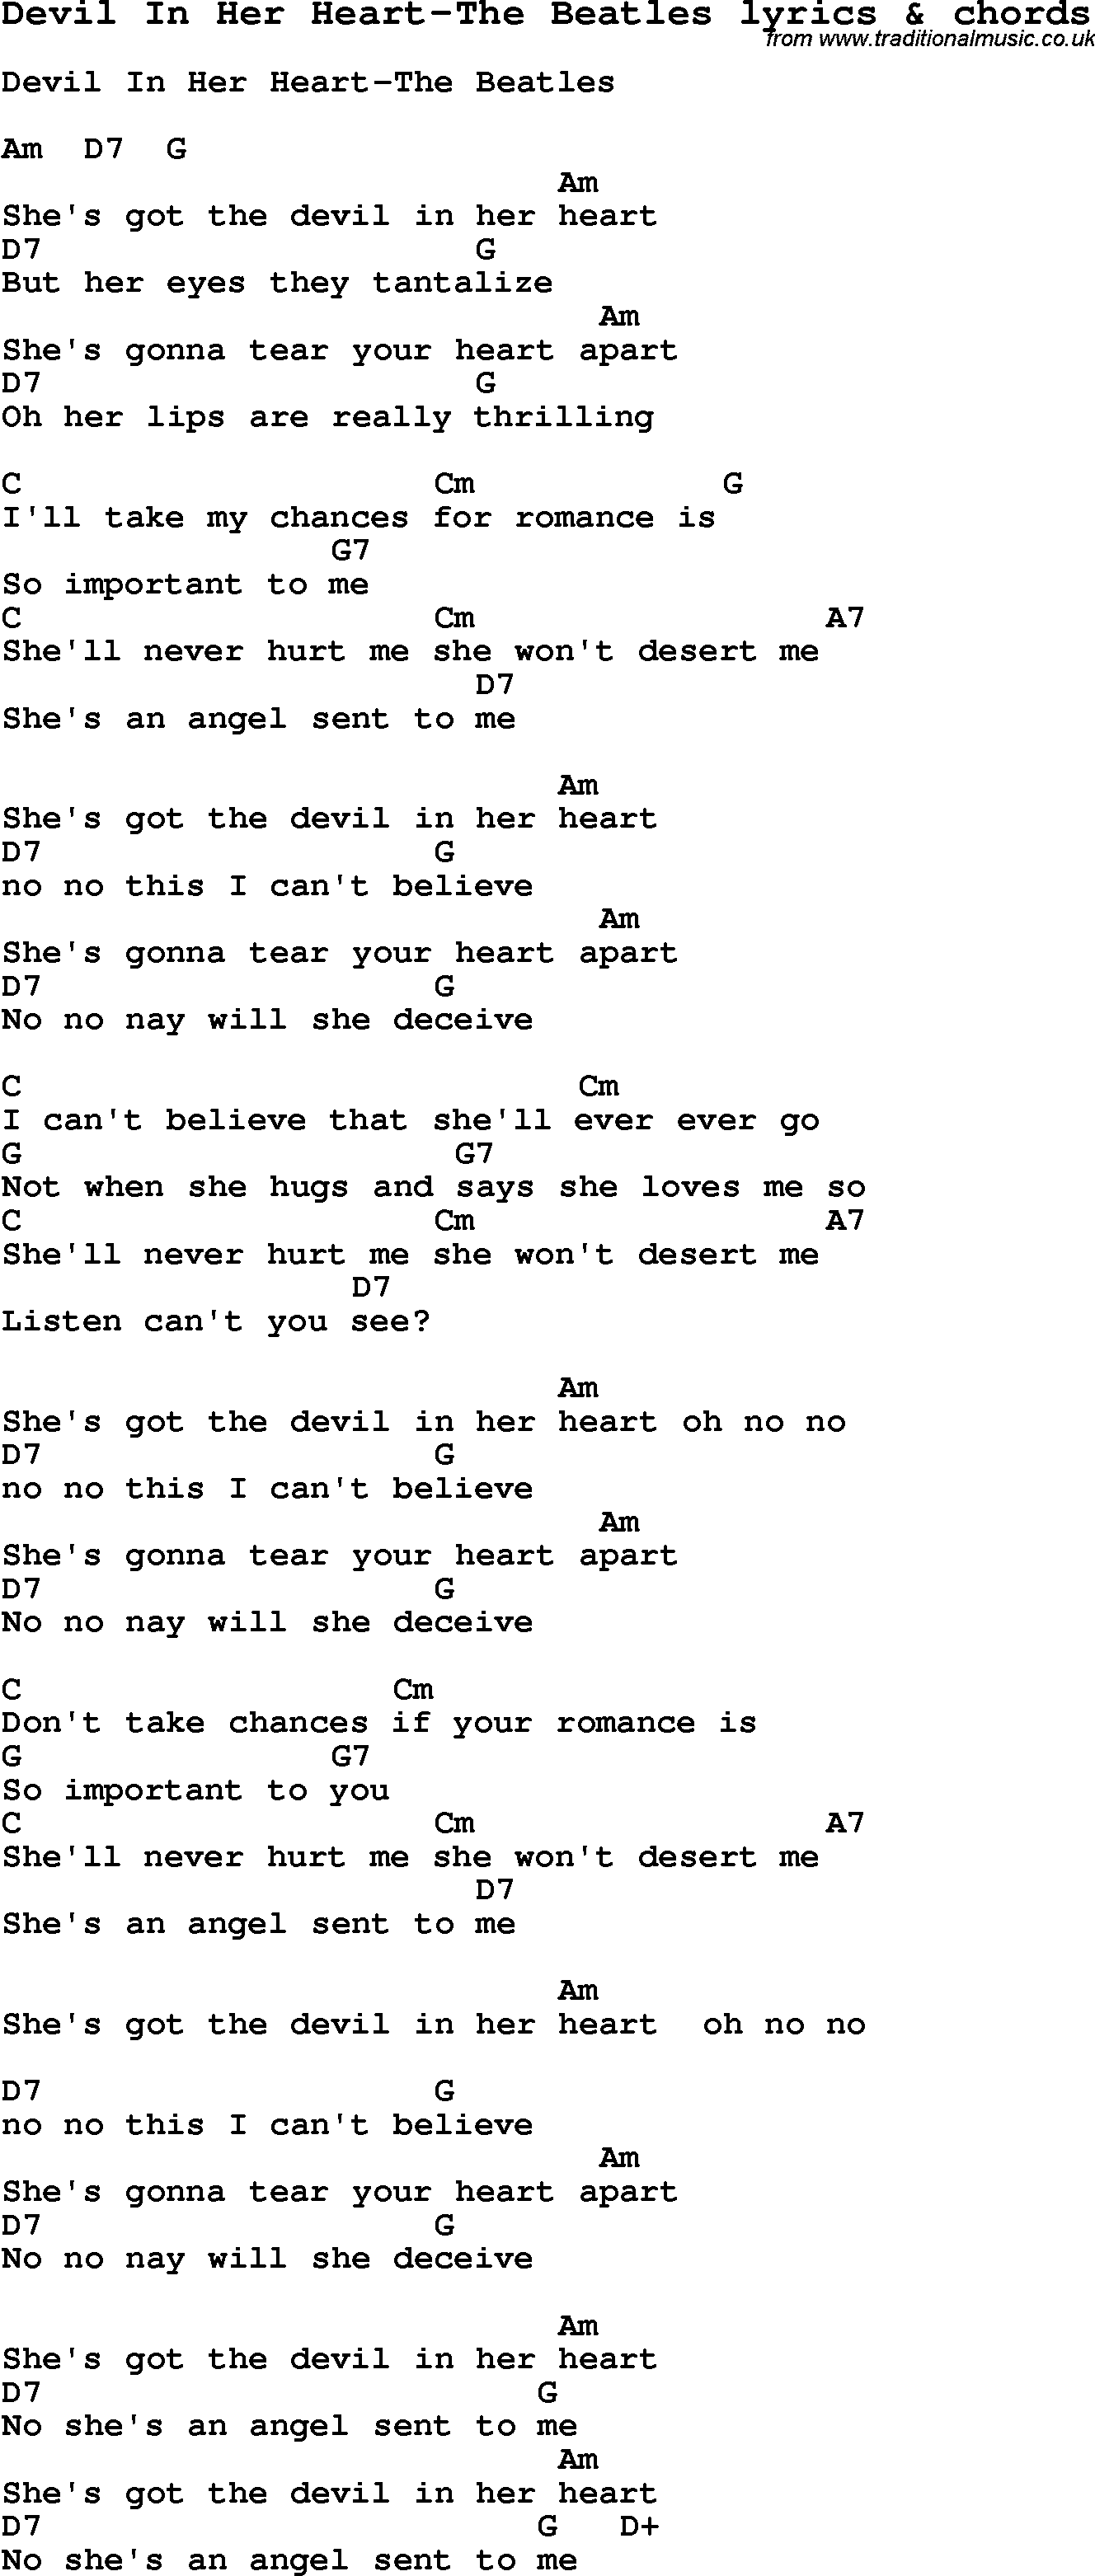 Love Song Lyrics for:Devil In Her Heart-The Beatles with chords